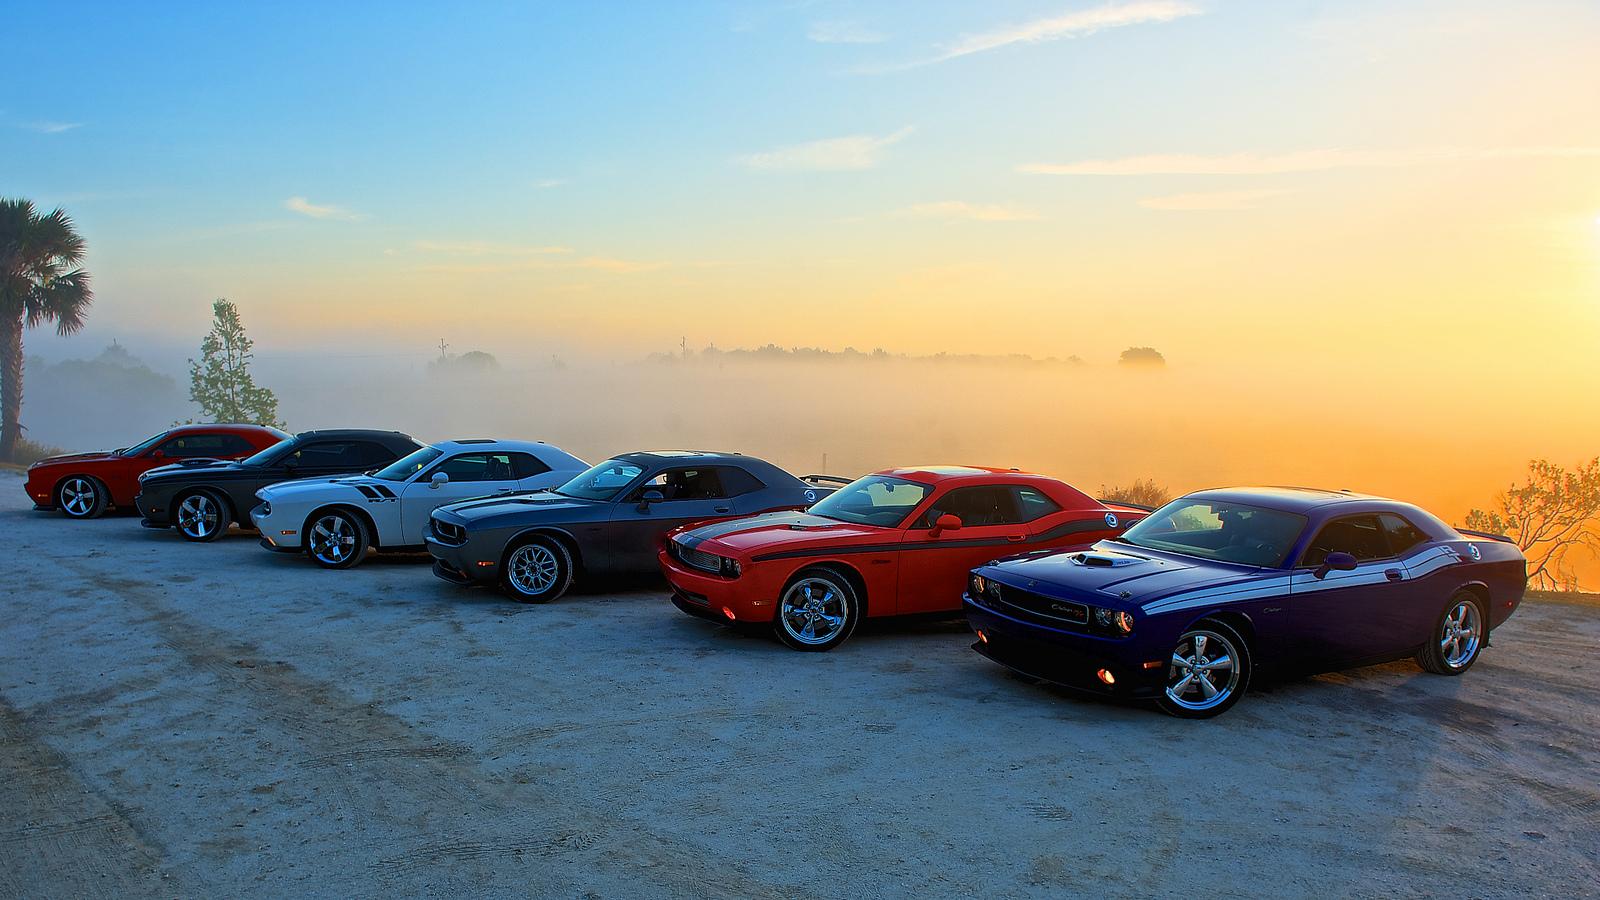 <a class='Imglink' href='#'>Challengers in the mist</a>